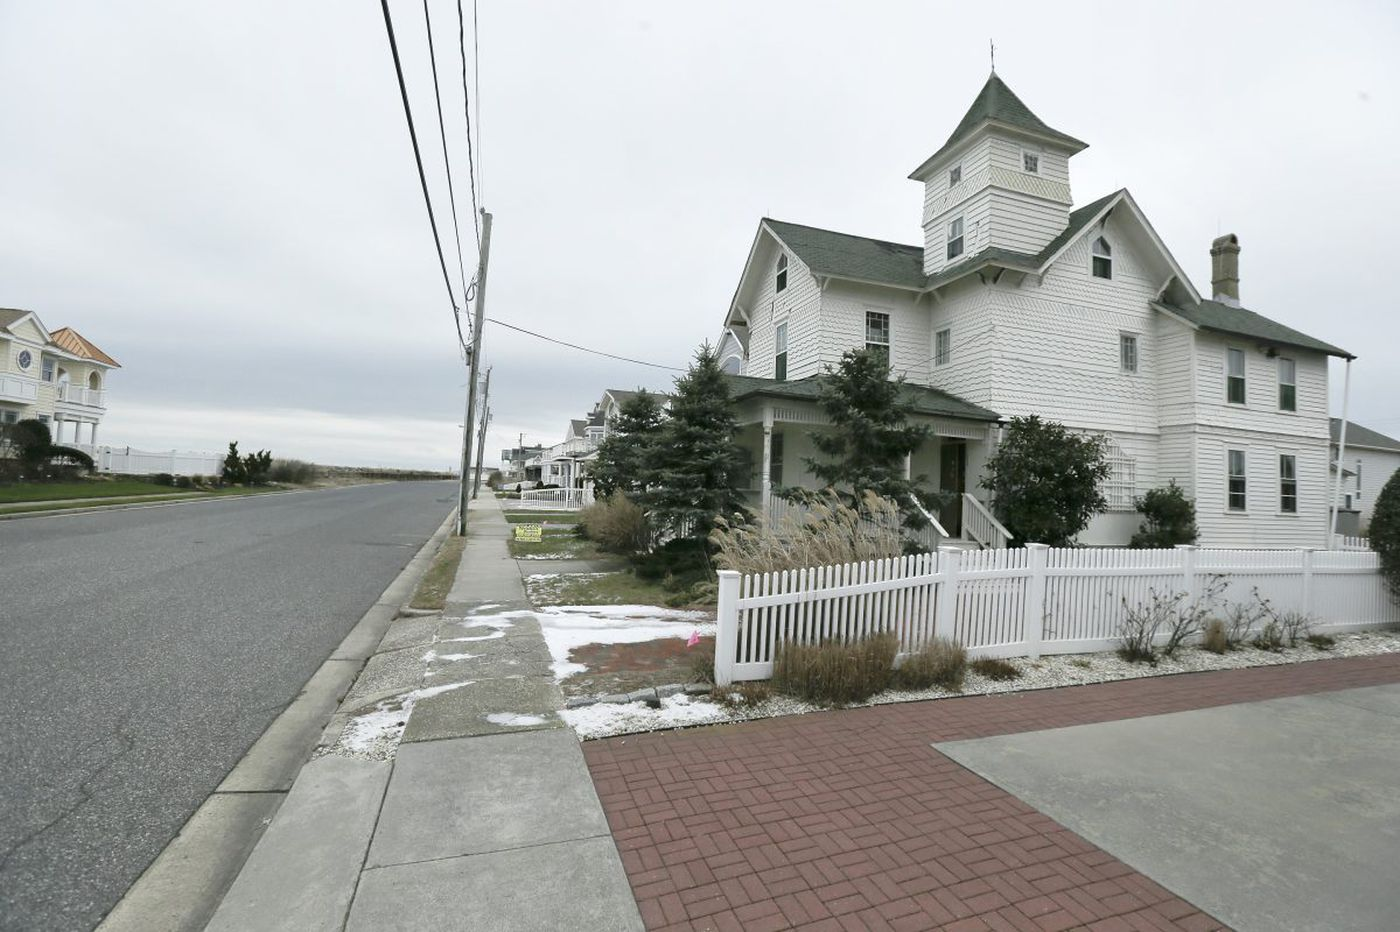 At Shore, a last-minute effort to save an old house has odds stacked against it